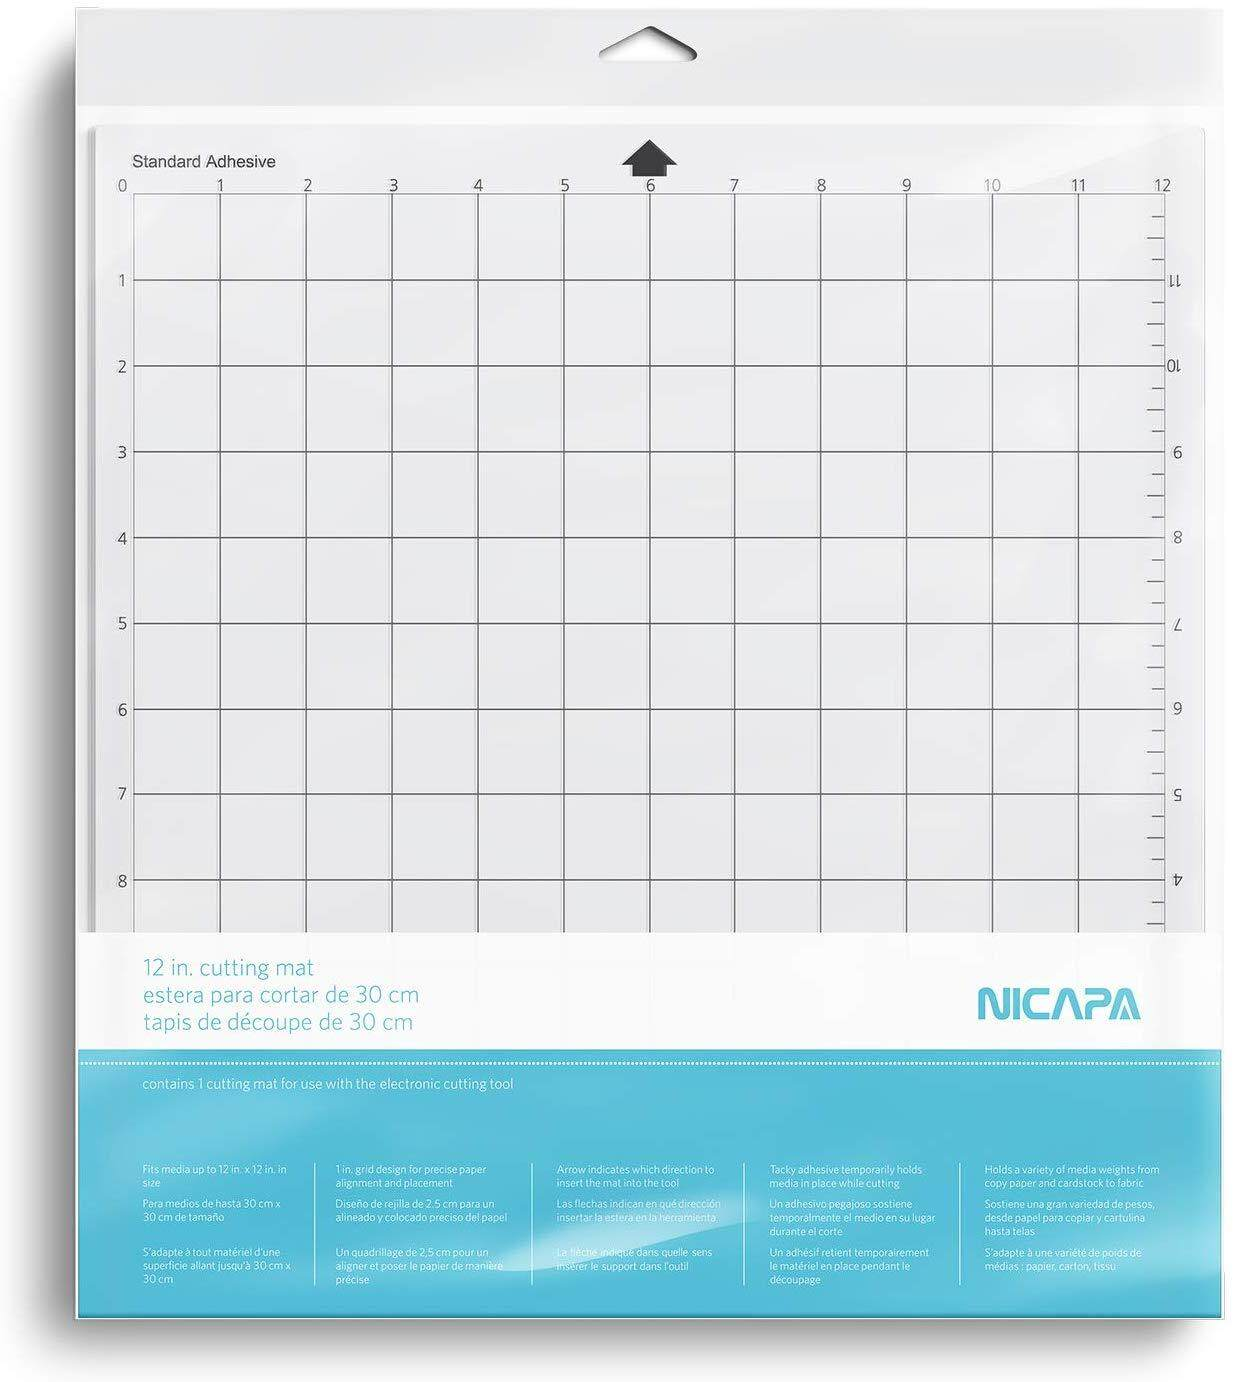 Nicapa Standardgrip Cutting Mat For Silhouette Cameo 4 3 2 1 12x12 Inch 3 Mats Standard Adhesive Sticky Quilting Cricket Cut Mats Replacement